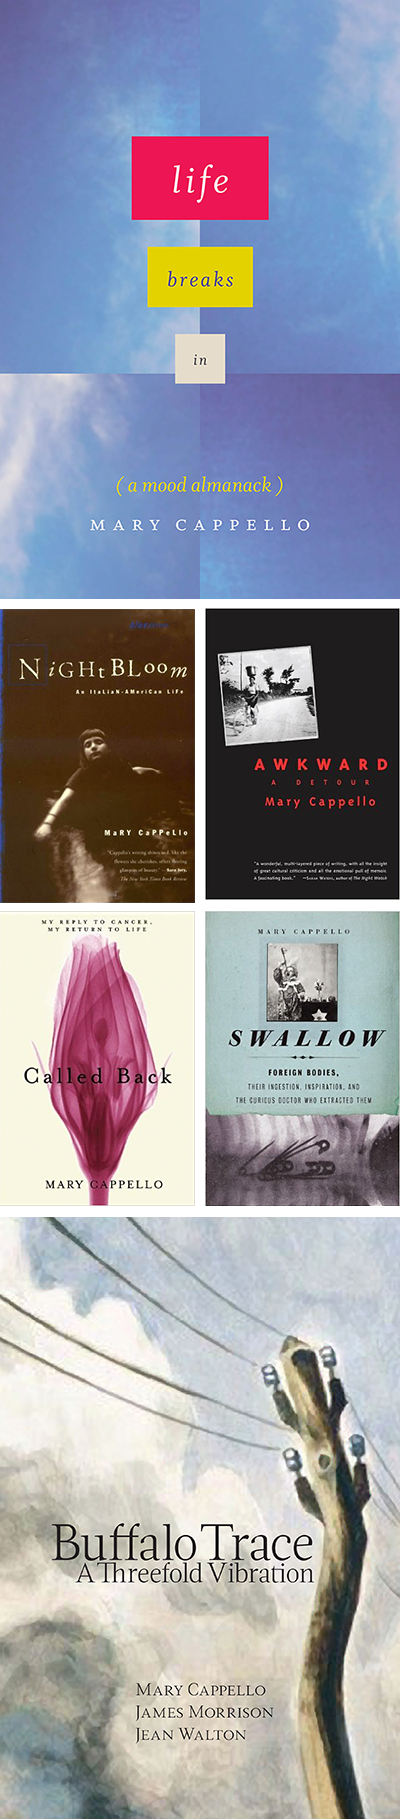 Books by Mary Cappello